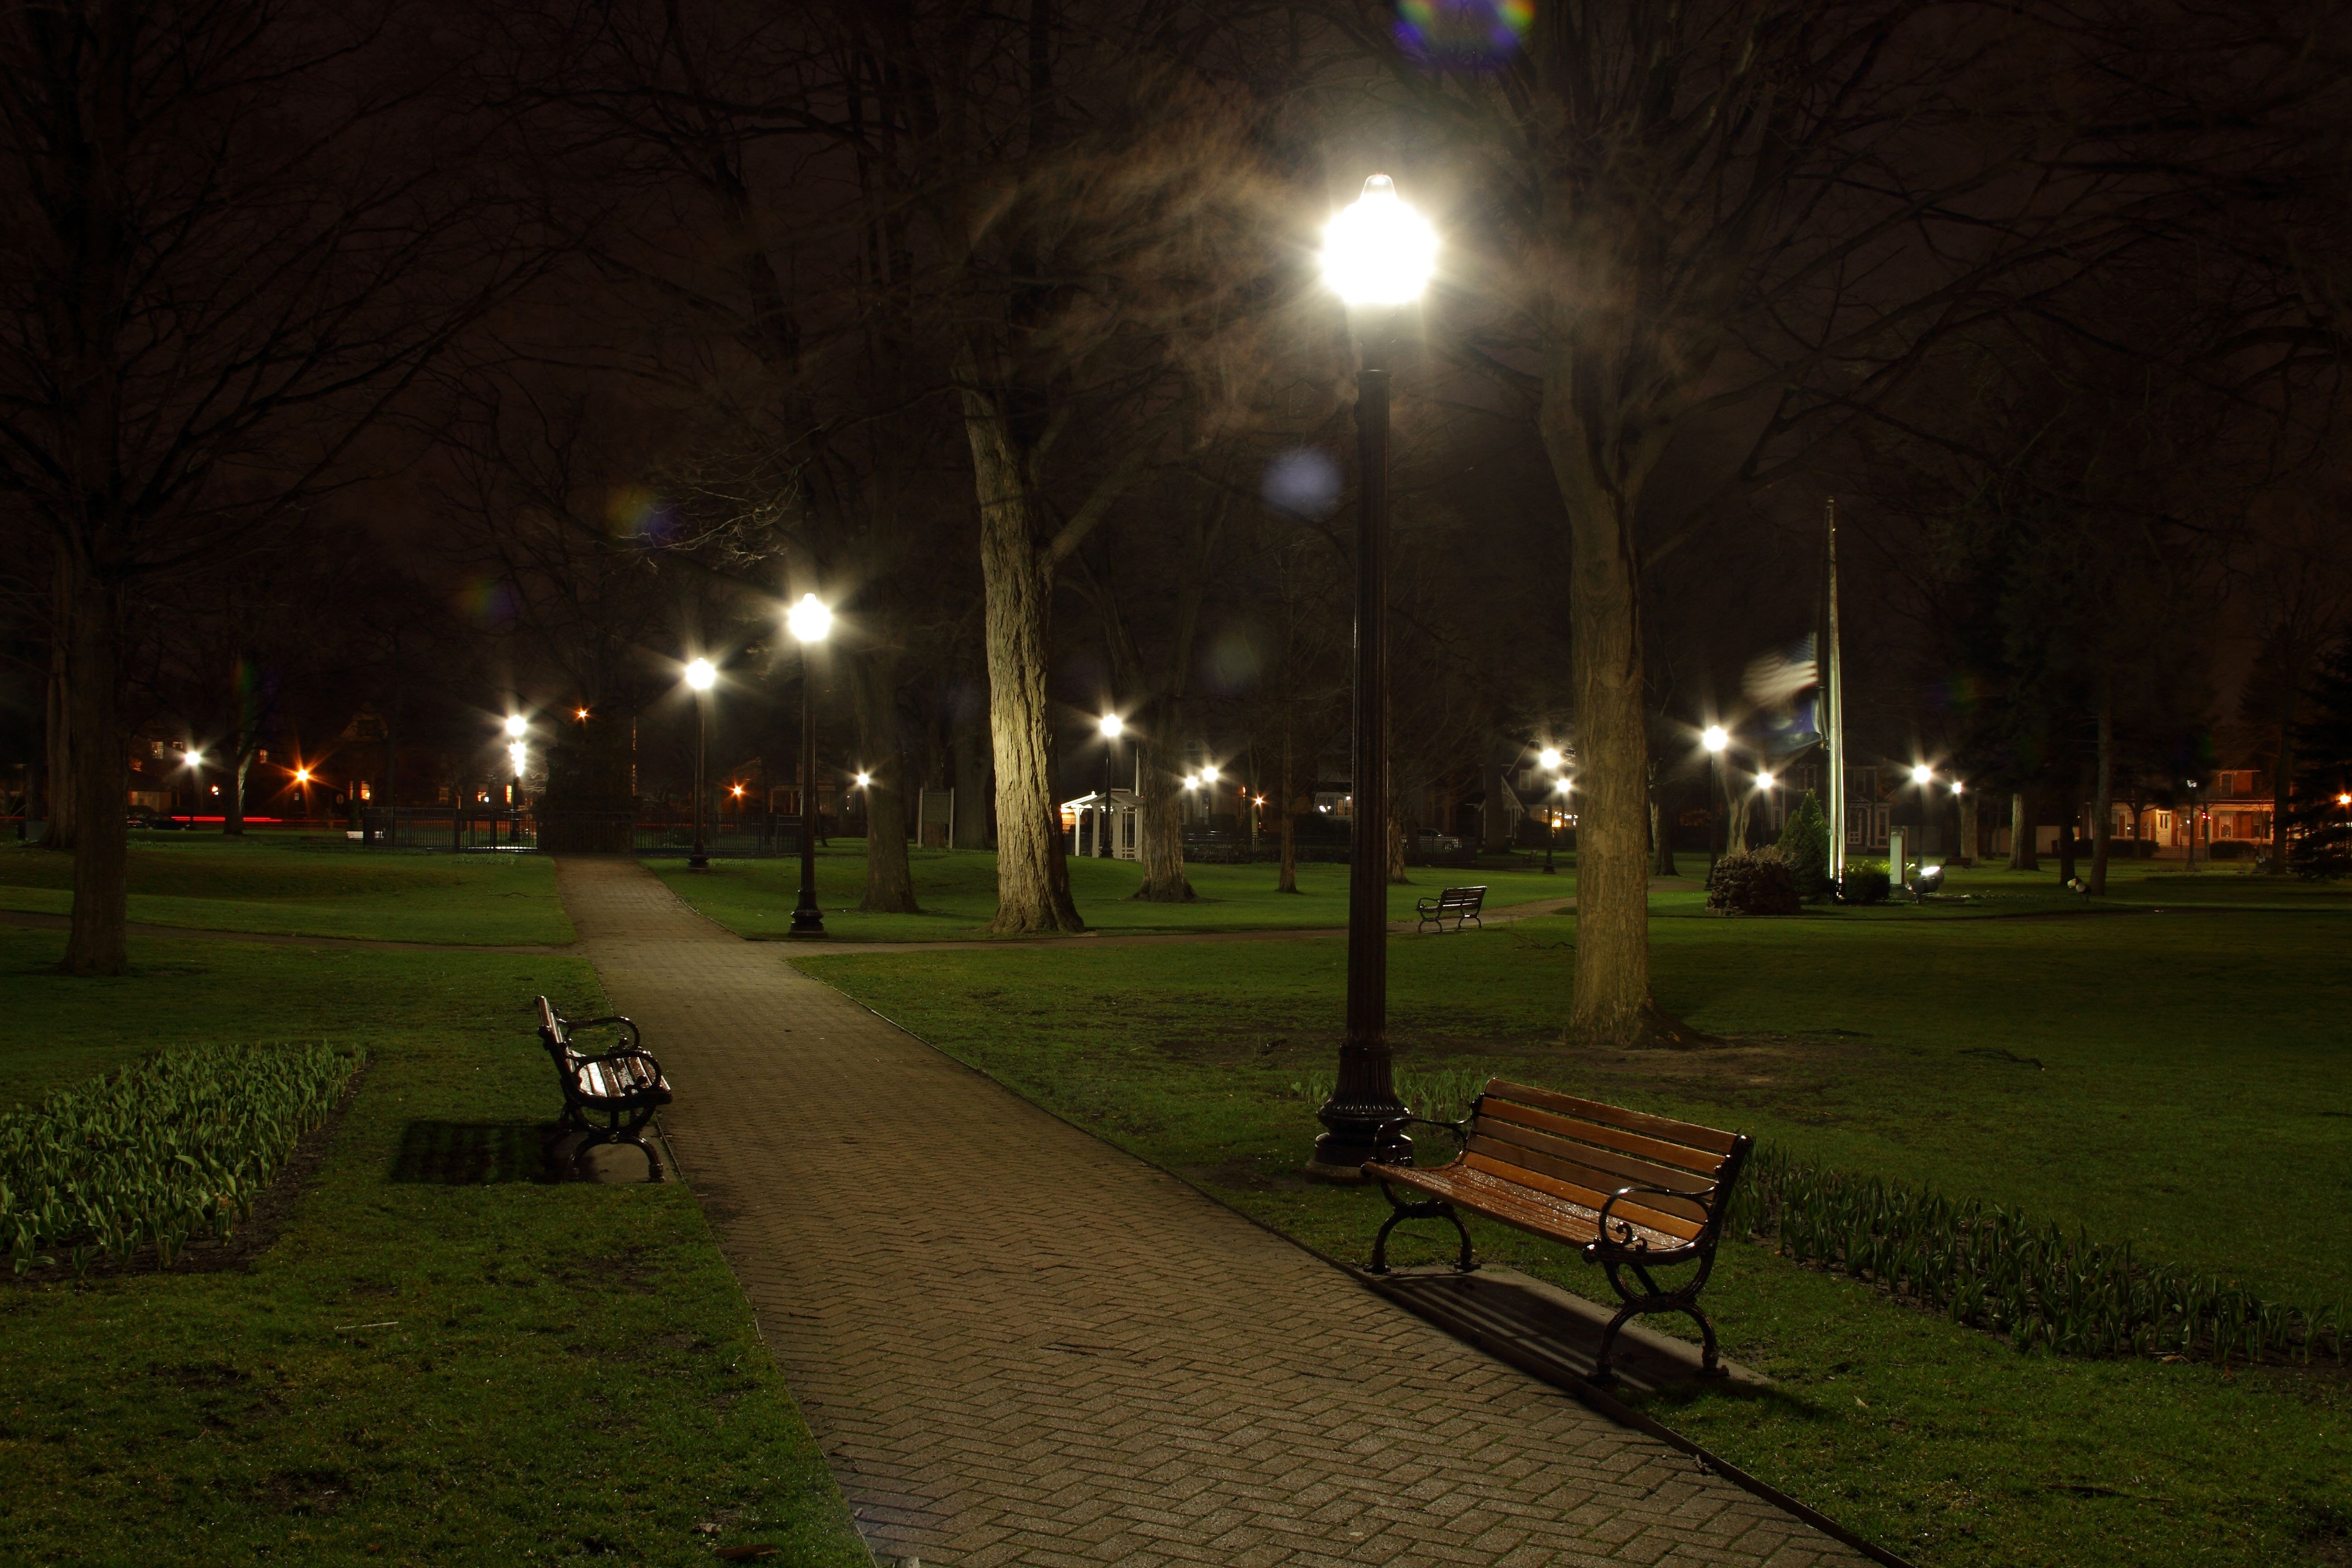 In a joint project with the City of Holland, BPW installed LED light ...